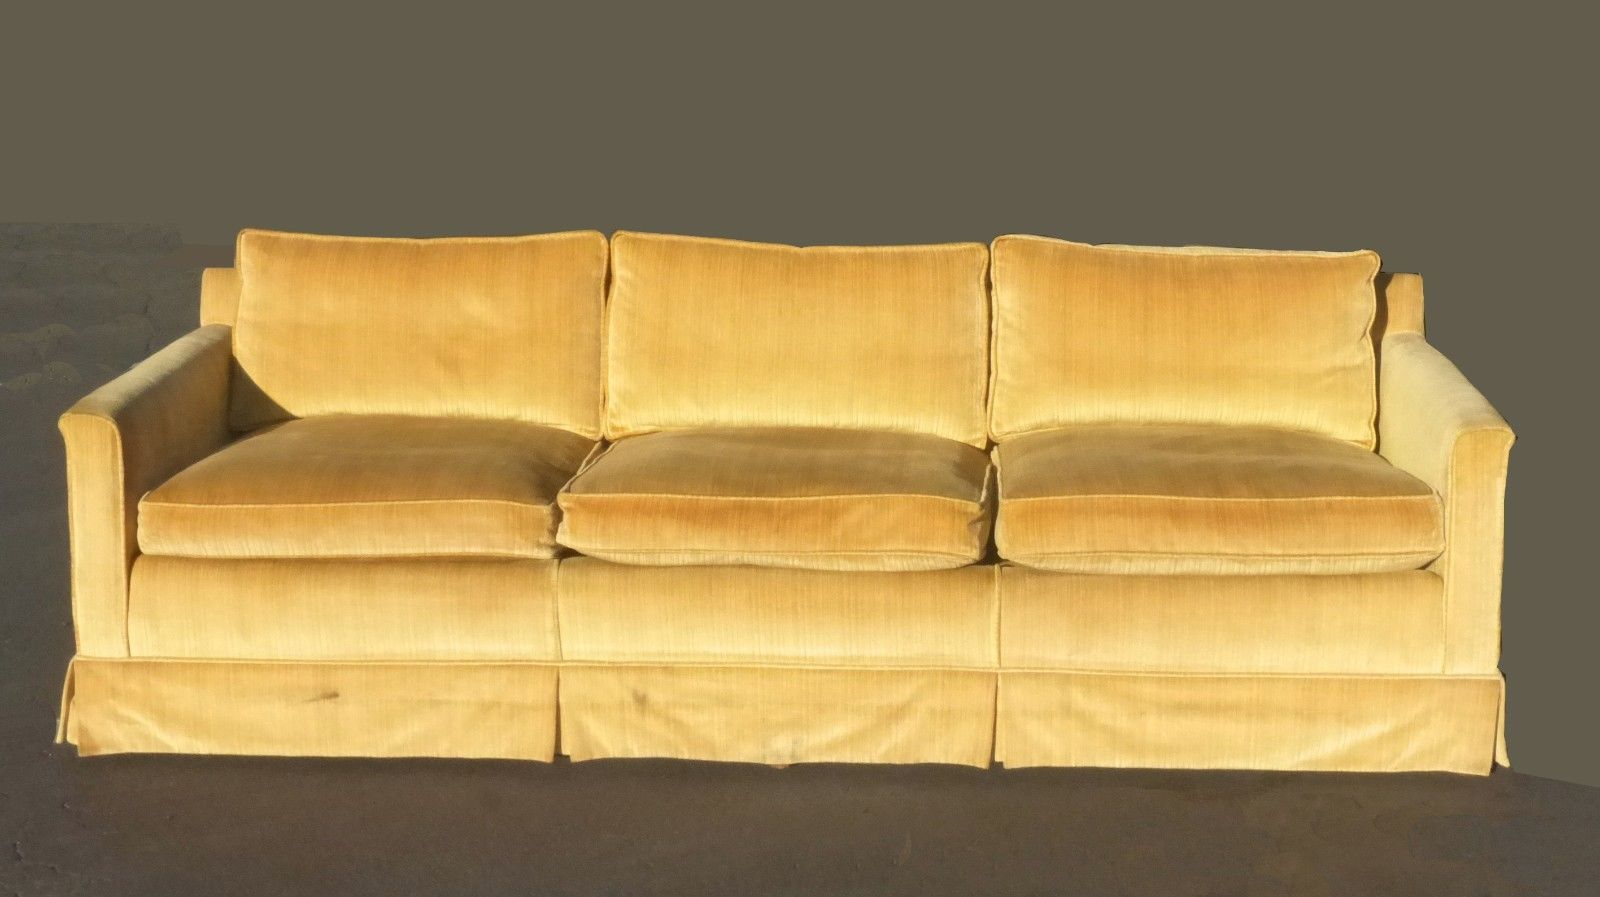 Vintage Mid Century Modern Gold Velvet Down Feathers Sofa Couch